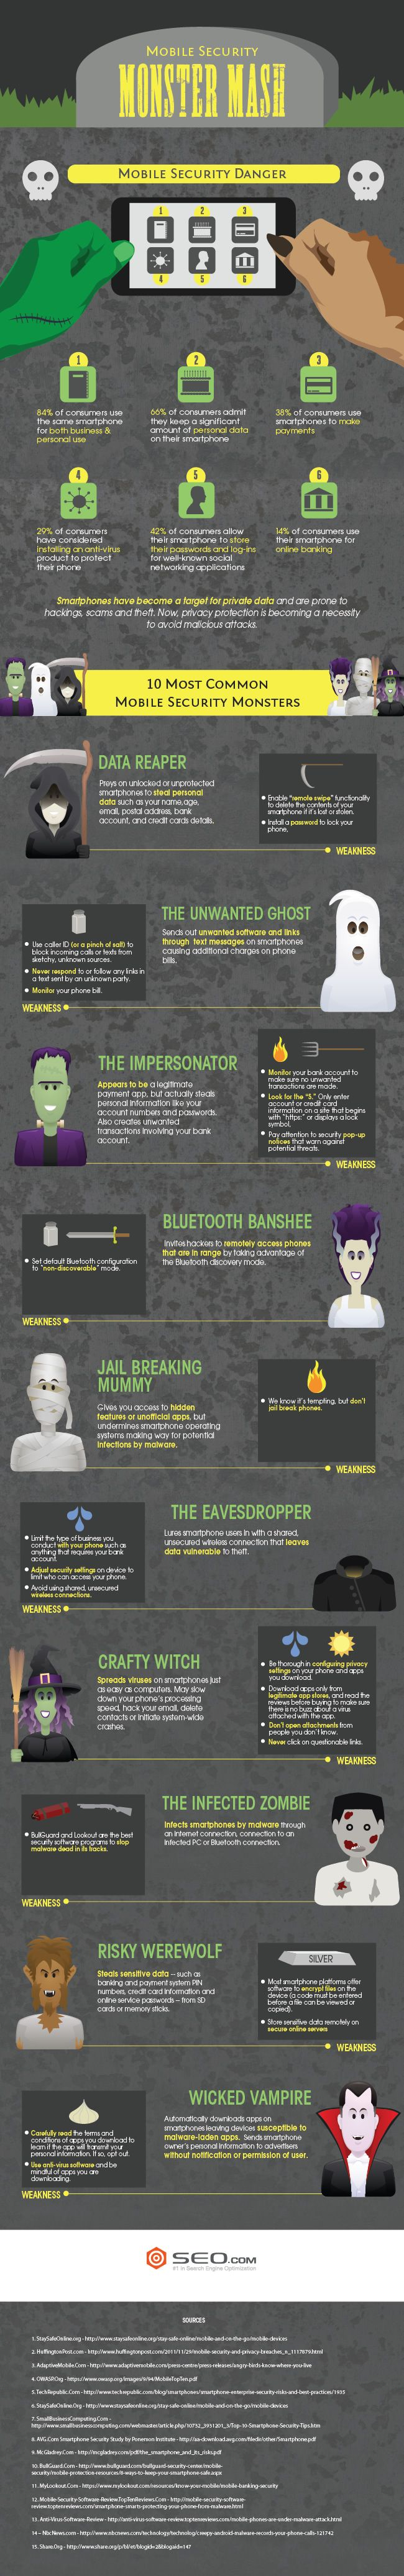 Mobile Phone Security Monster Mash #infographic (Good info here!)